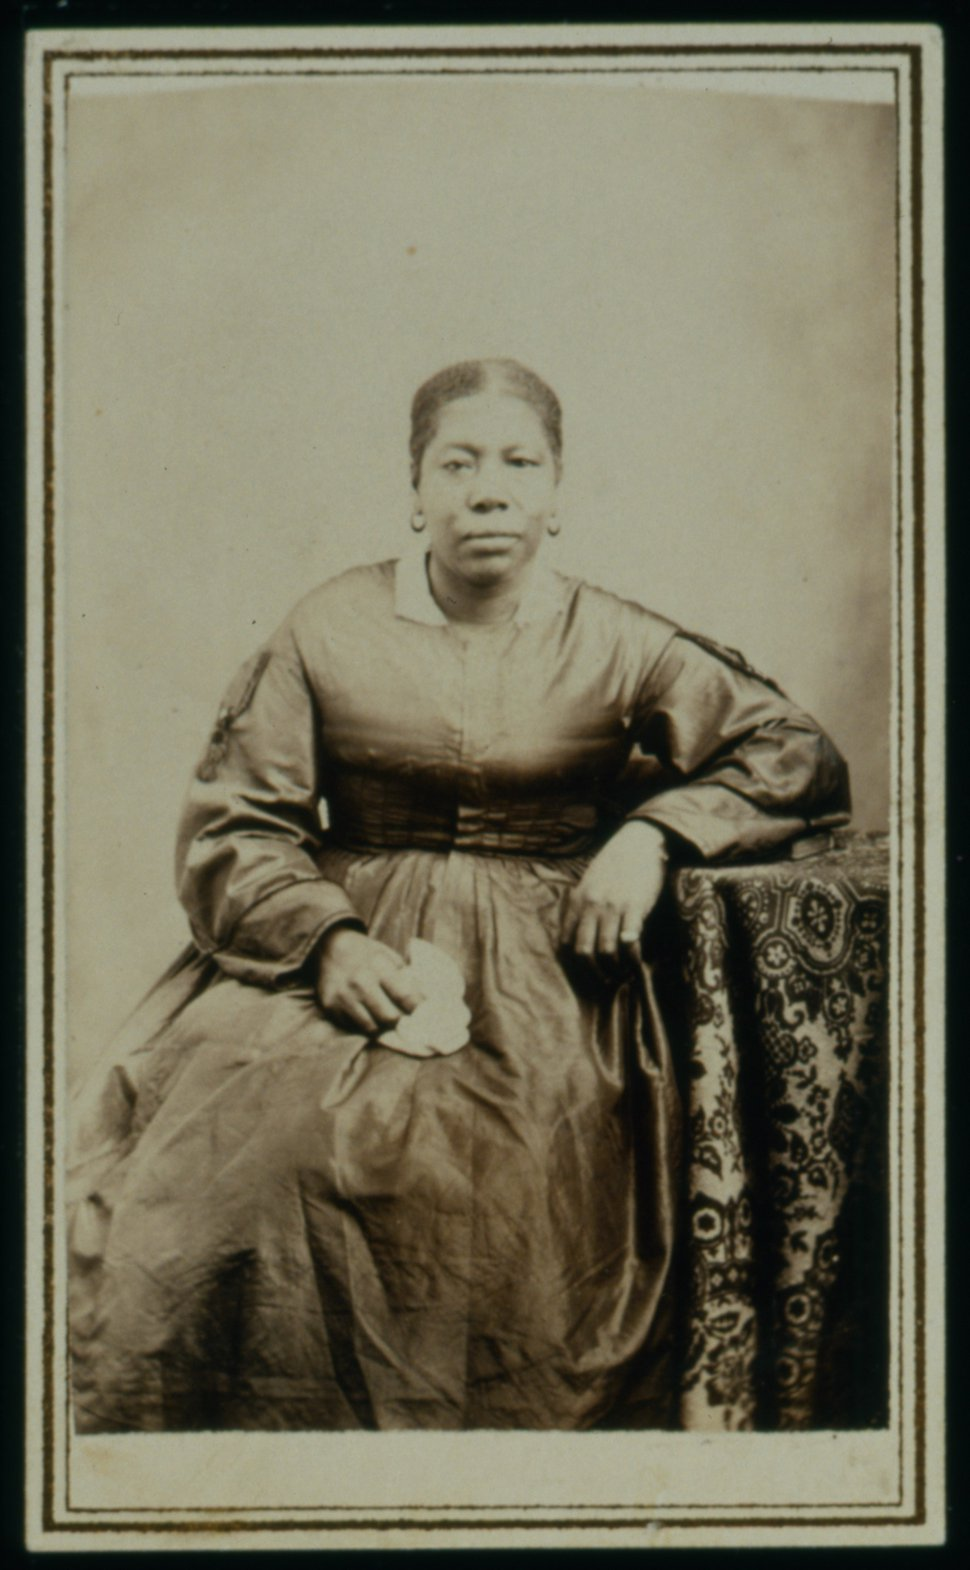 (Courtesy LDS Church) Jane Manning James